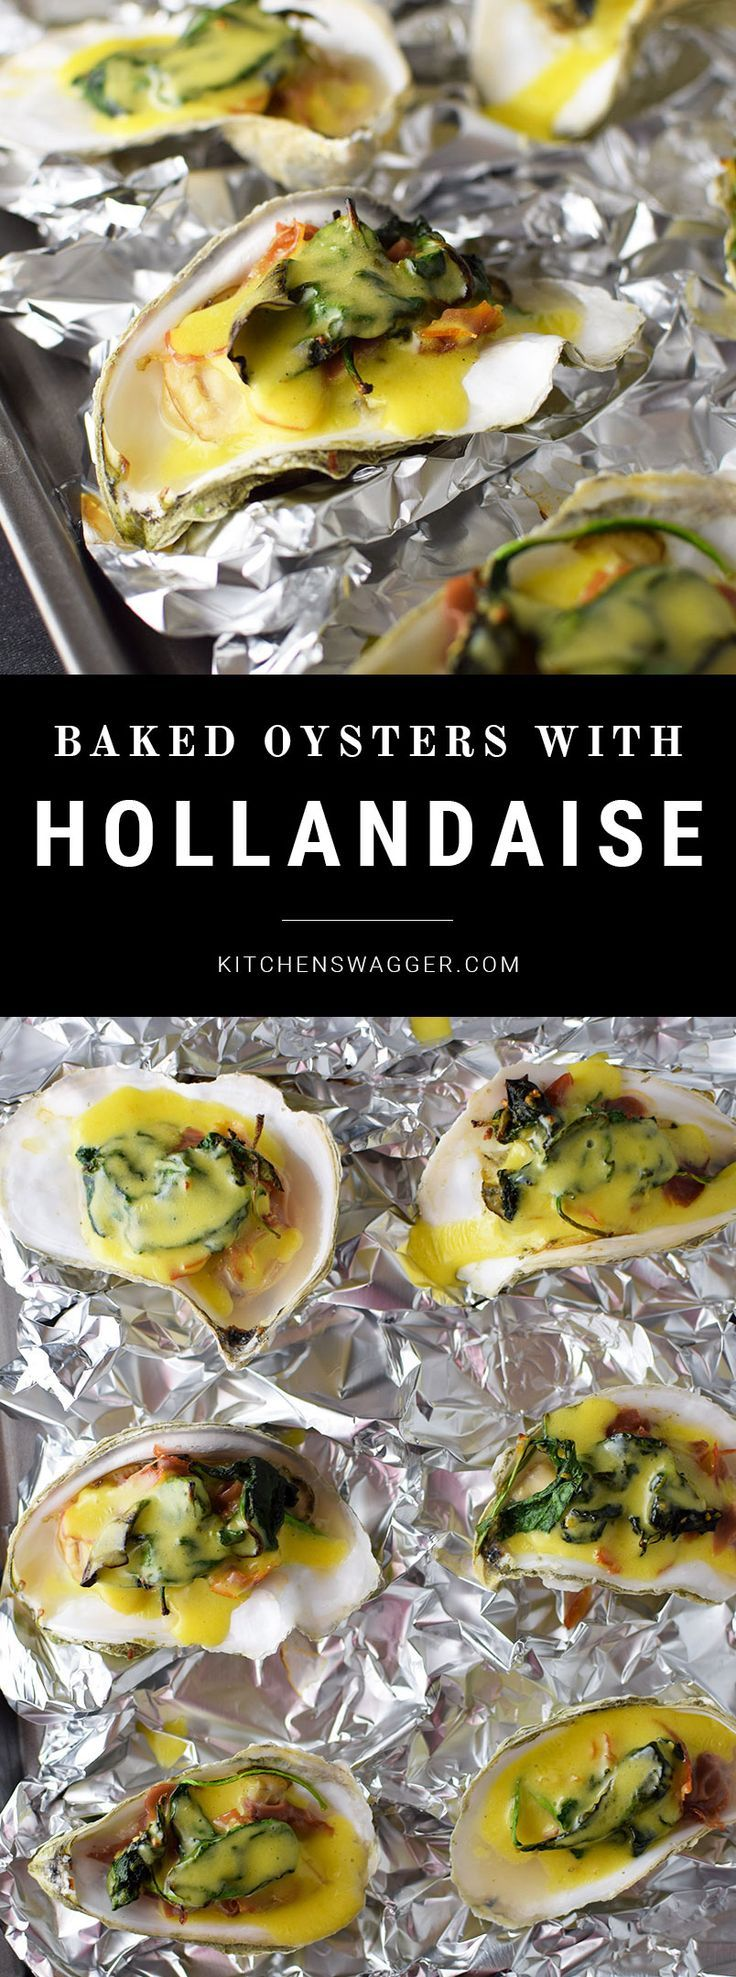 Baked oysters with prosciutto and hollandaise sauce is the perfect fresh and delicious app for any party or special occasion.